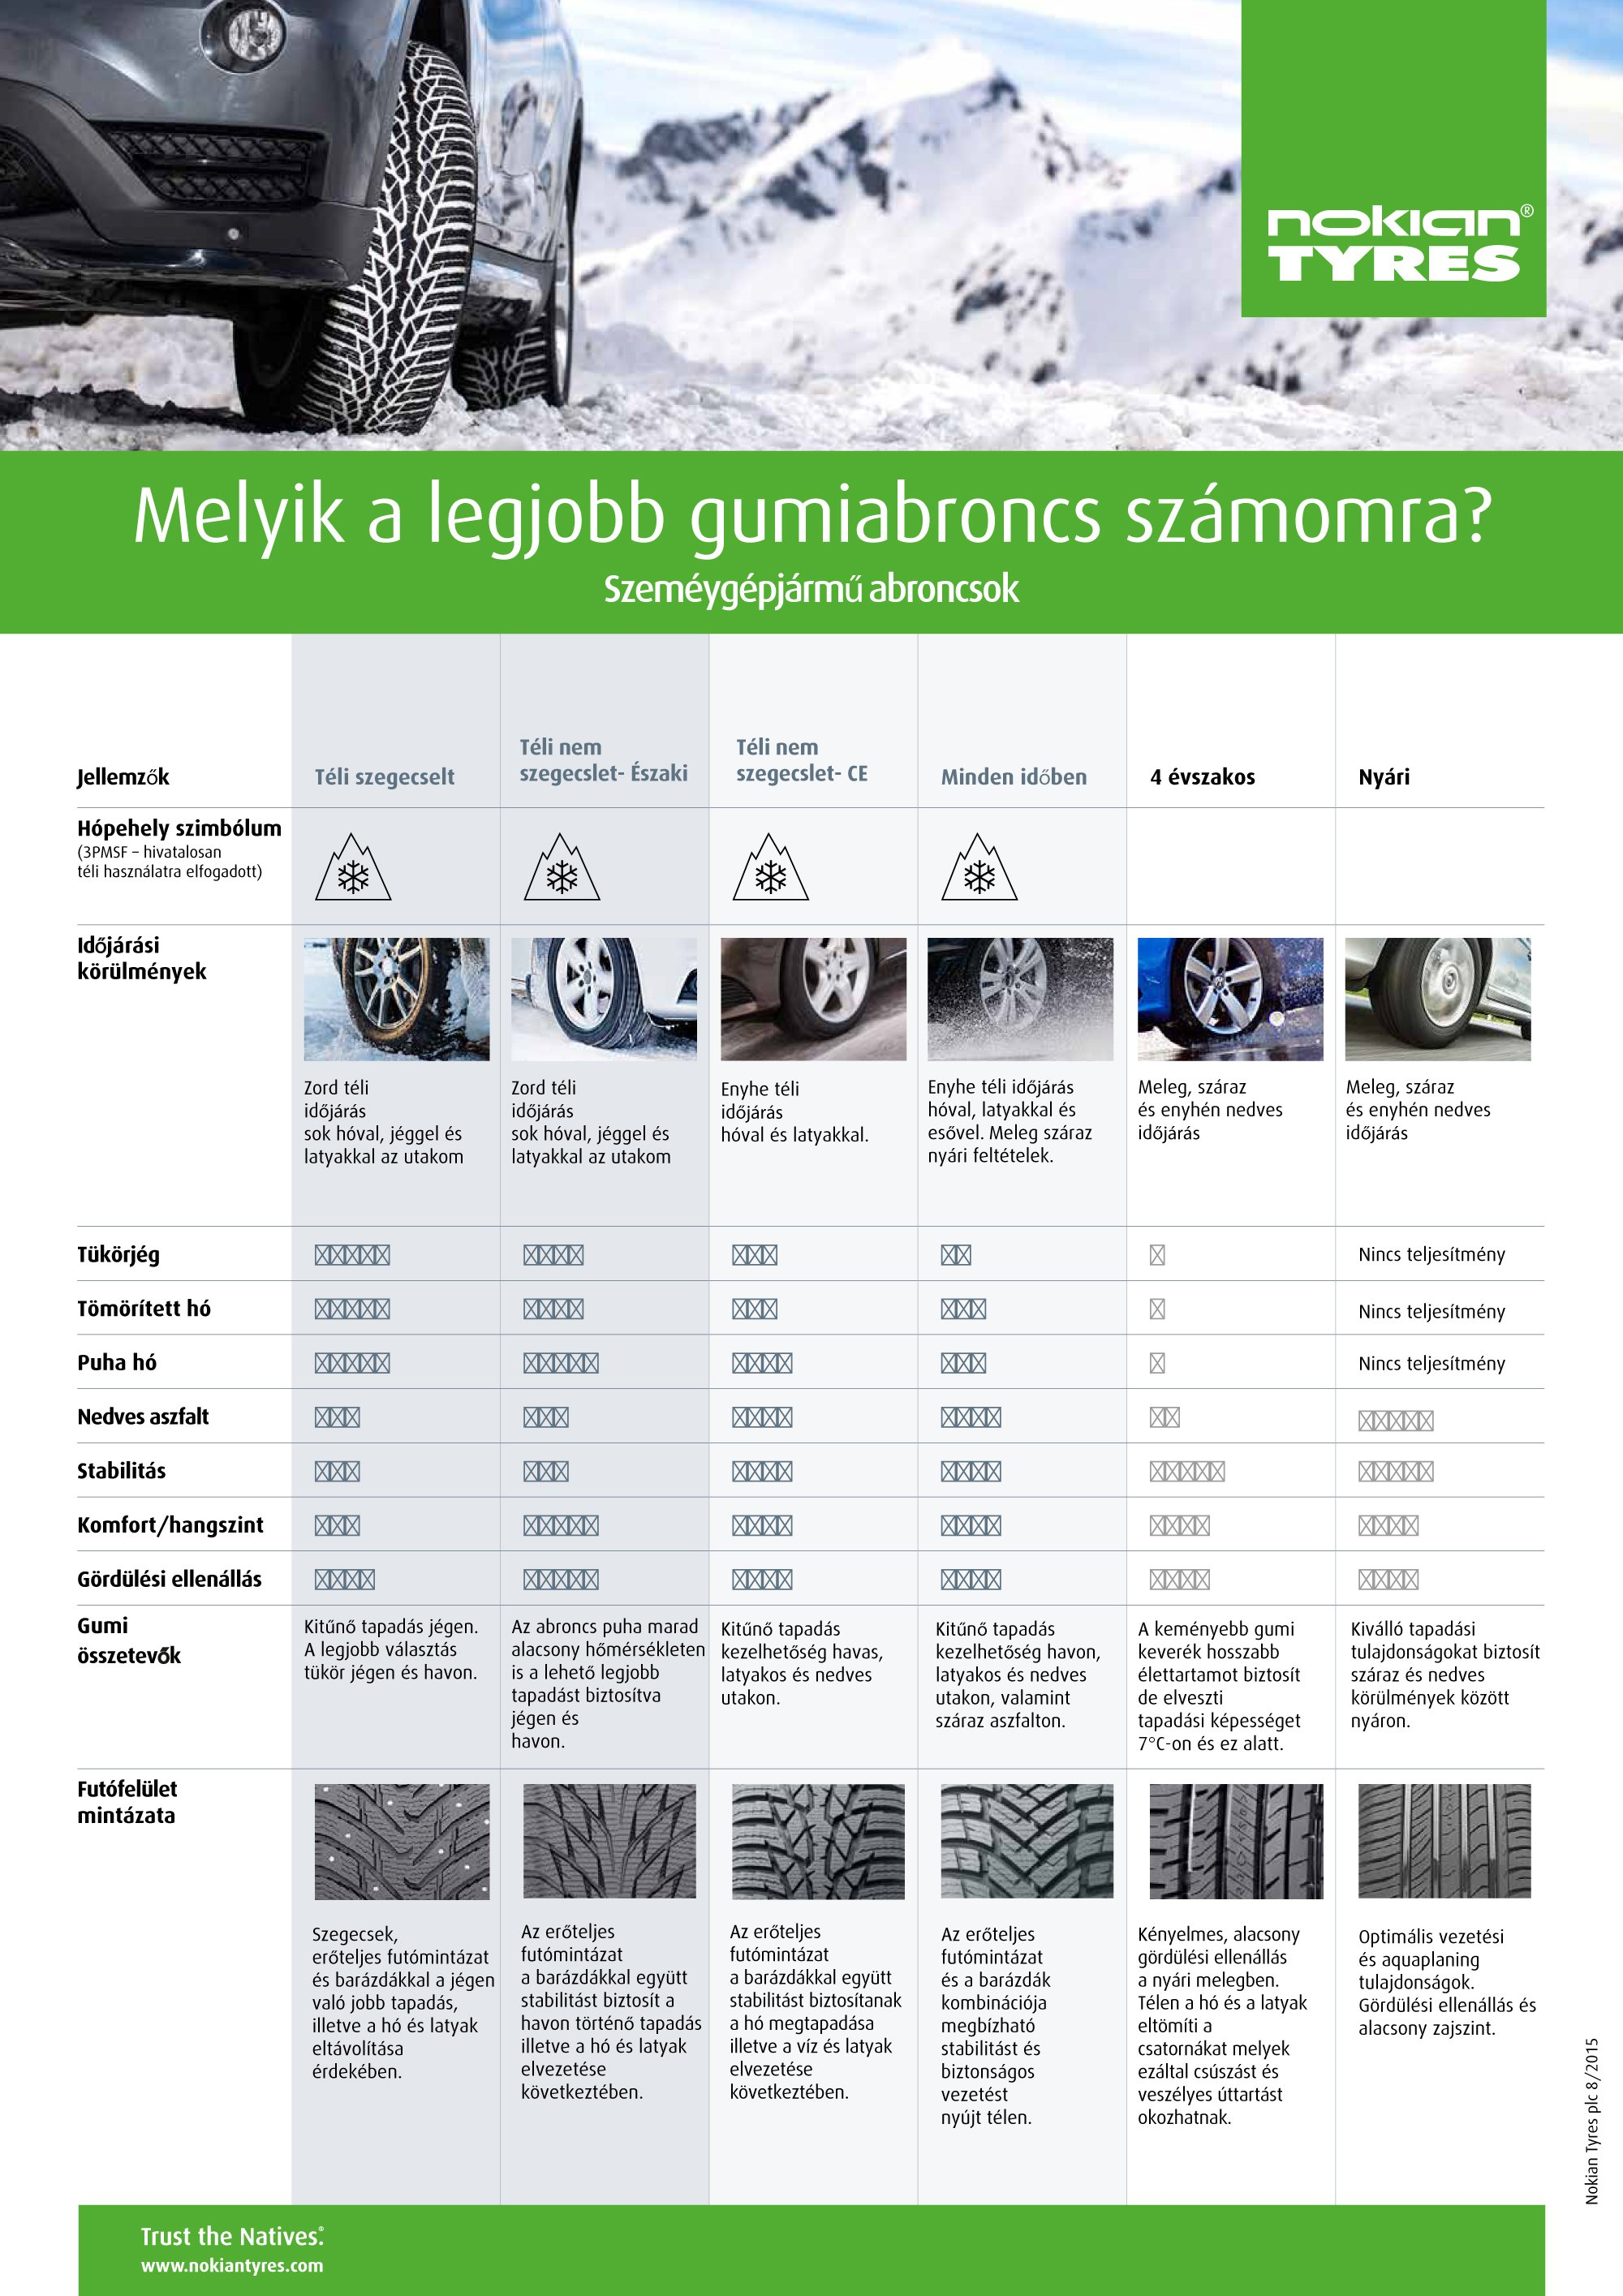 Nokian-Tyrses_comparison-of-different-2015